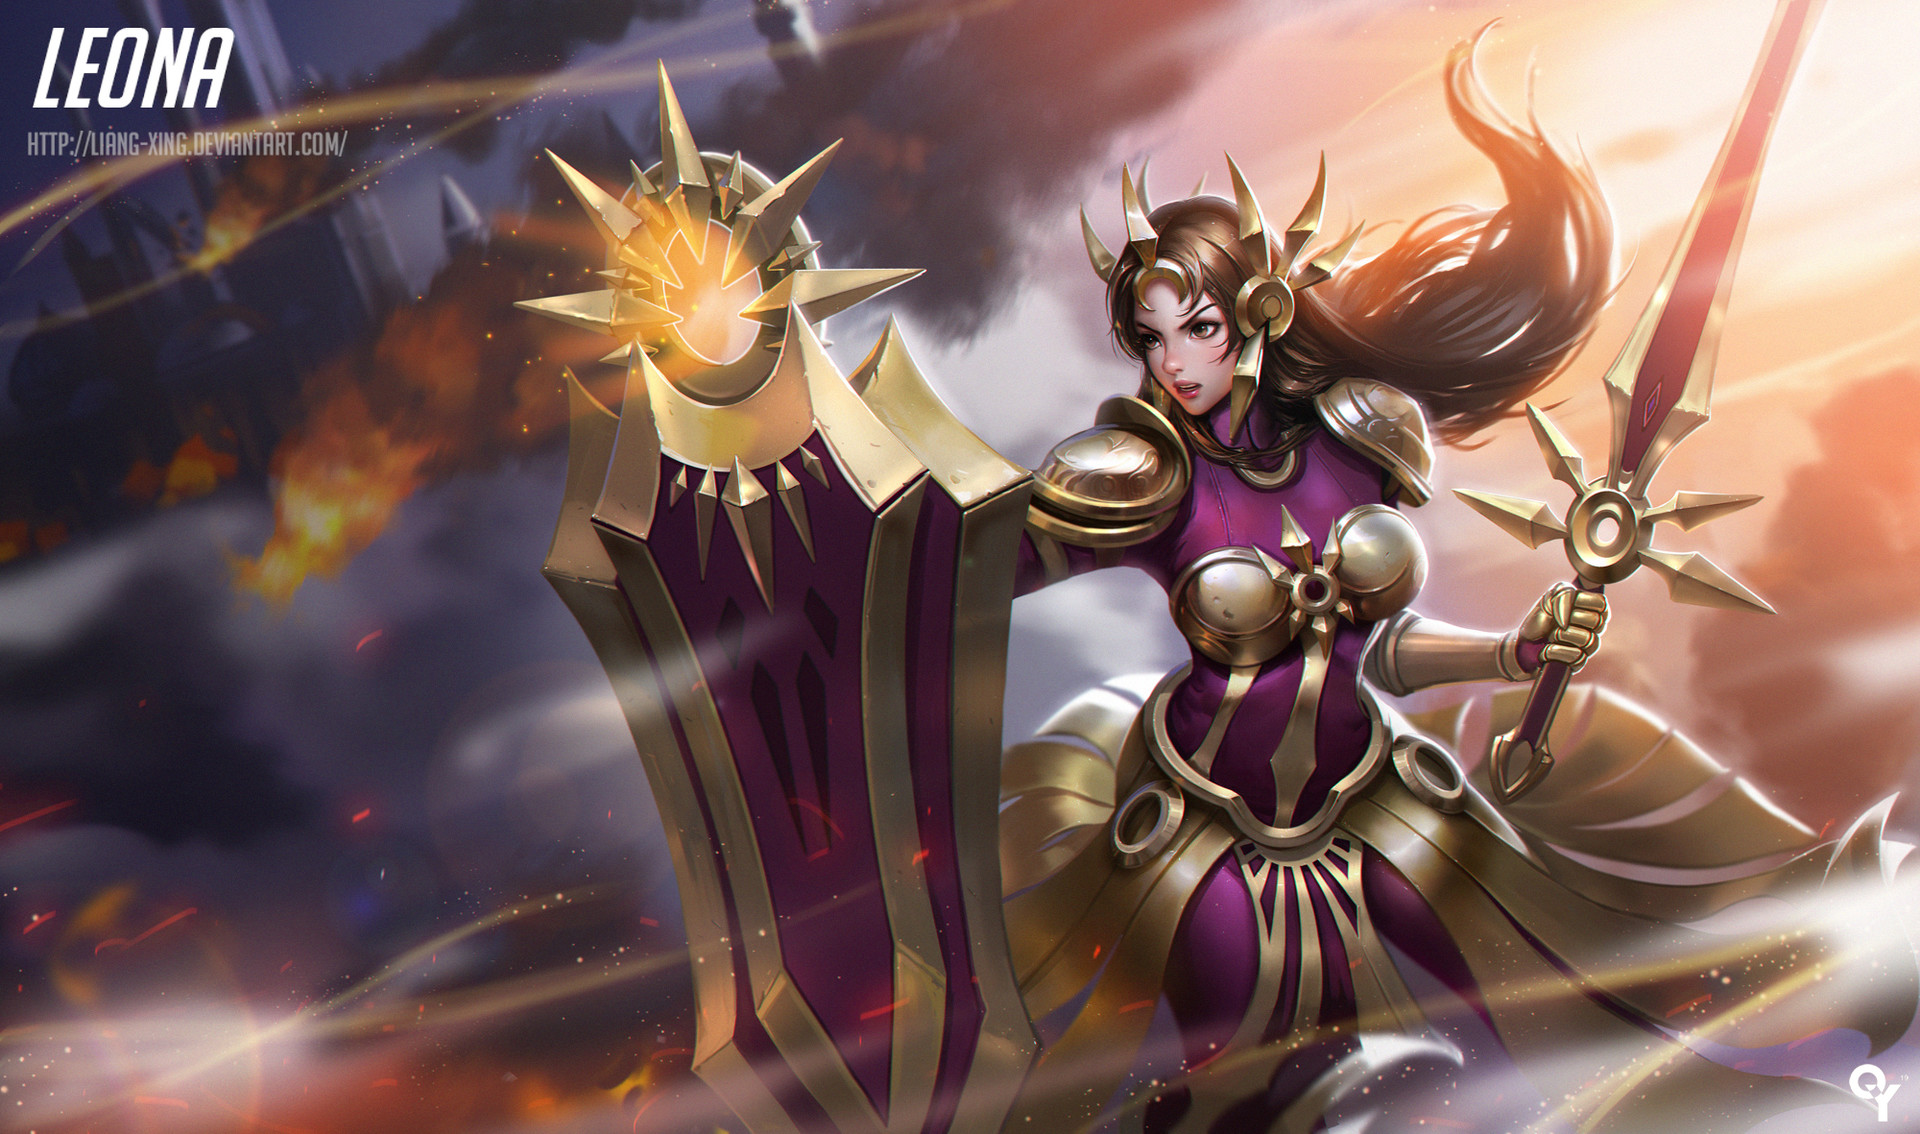 Leona (League of Legends) - League of Legends - Wallpaper ...